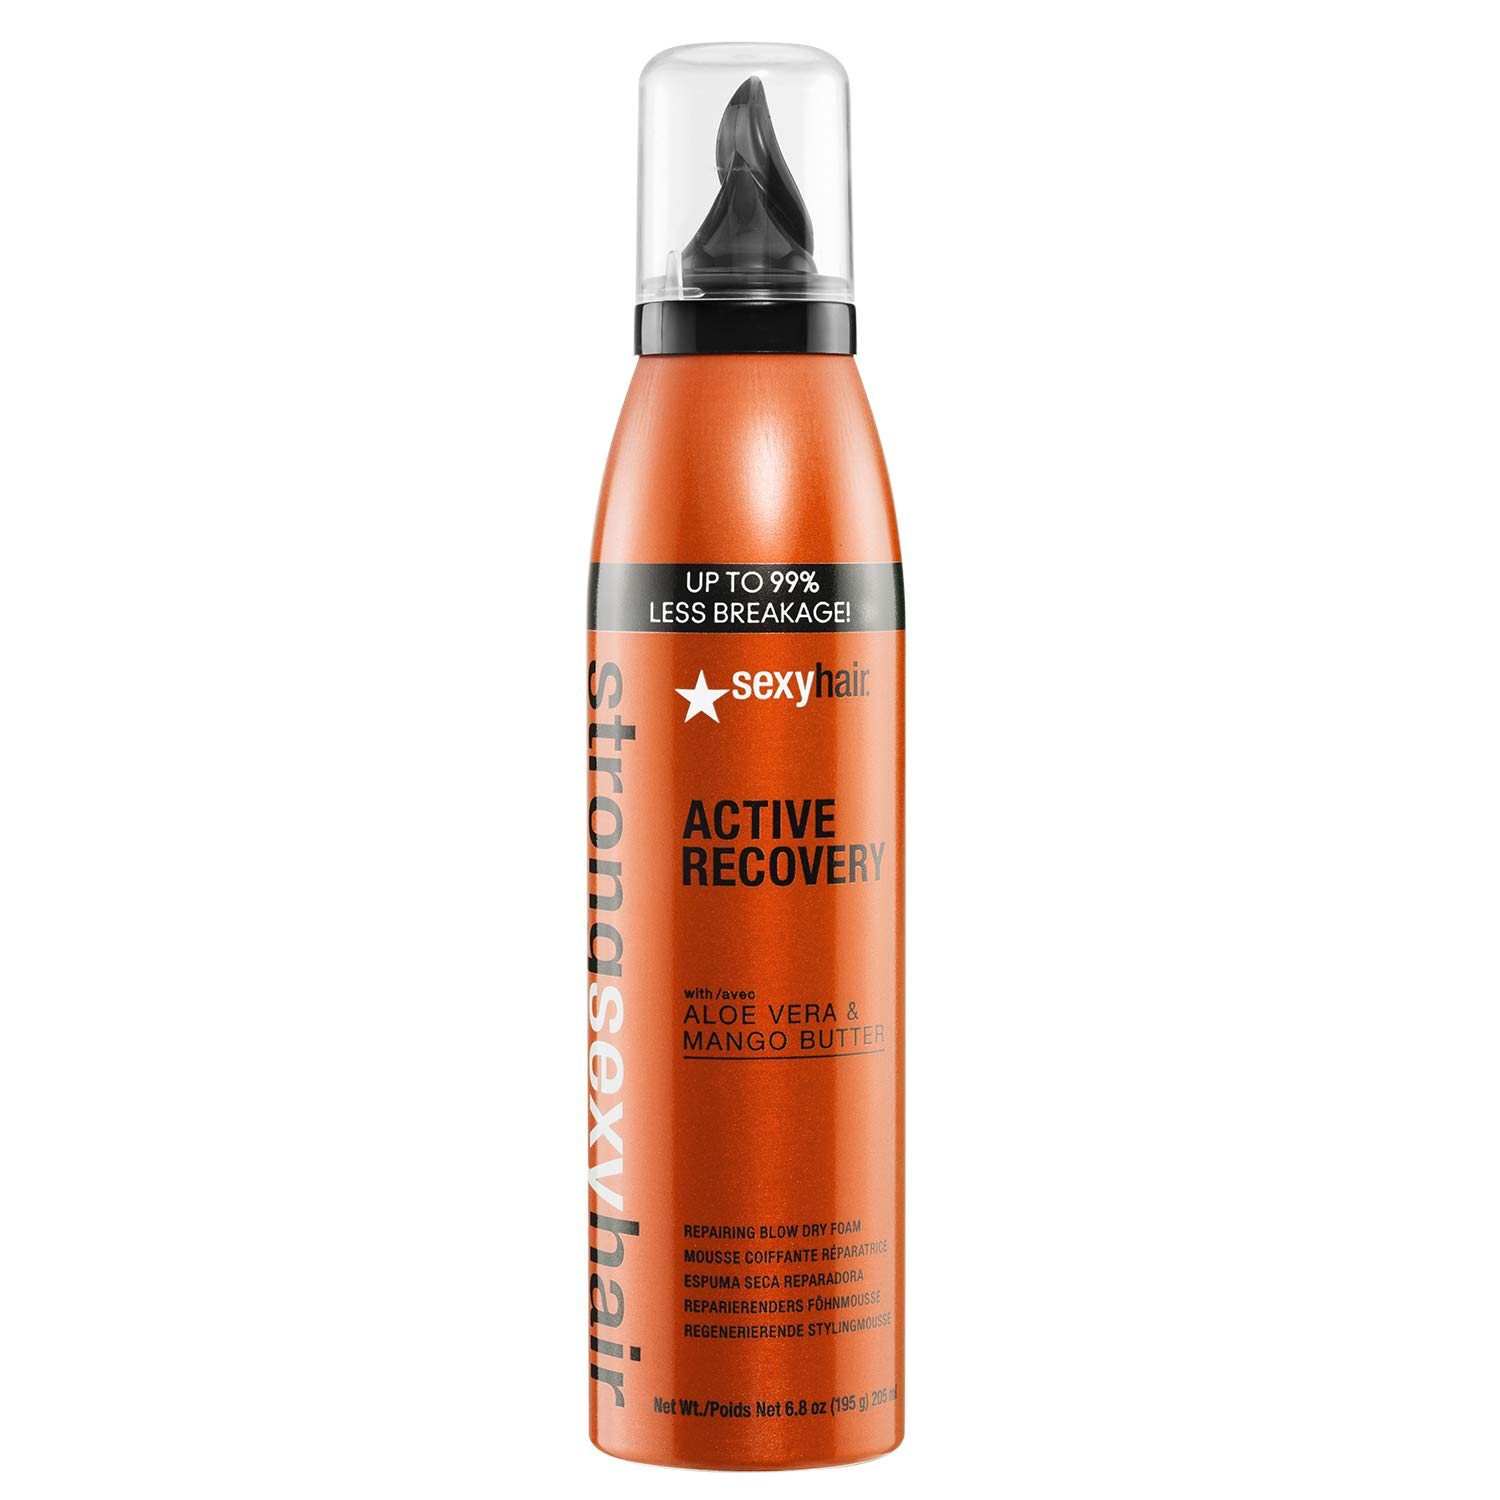 SexyHair Strong Active Recovery Repairing Blow Dry Foam, 6.8 oz